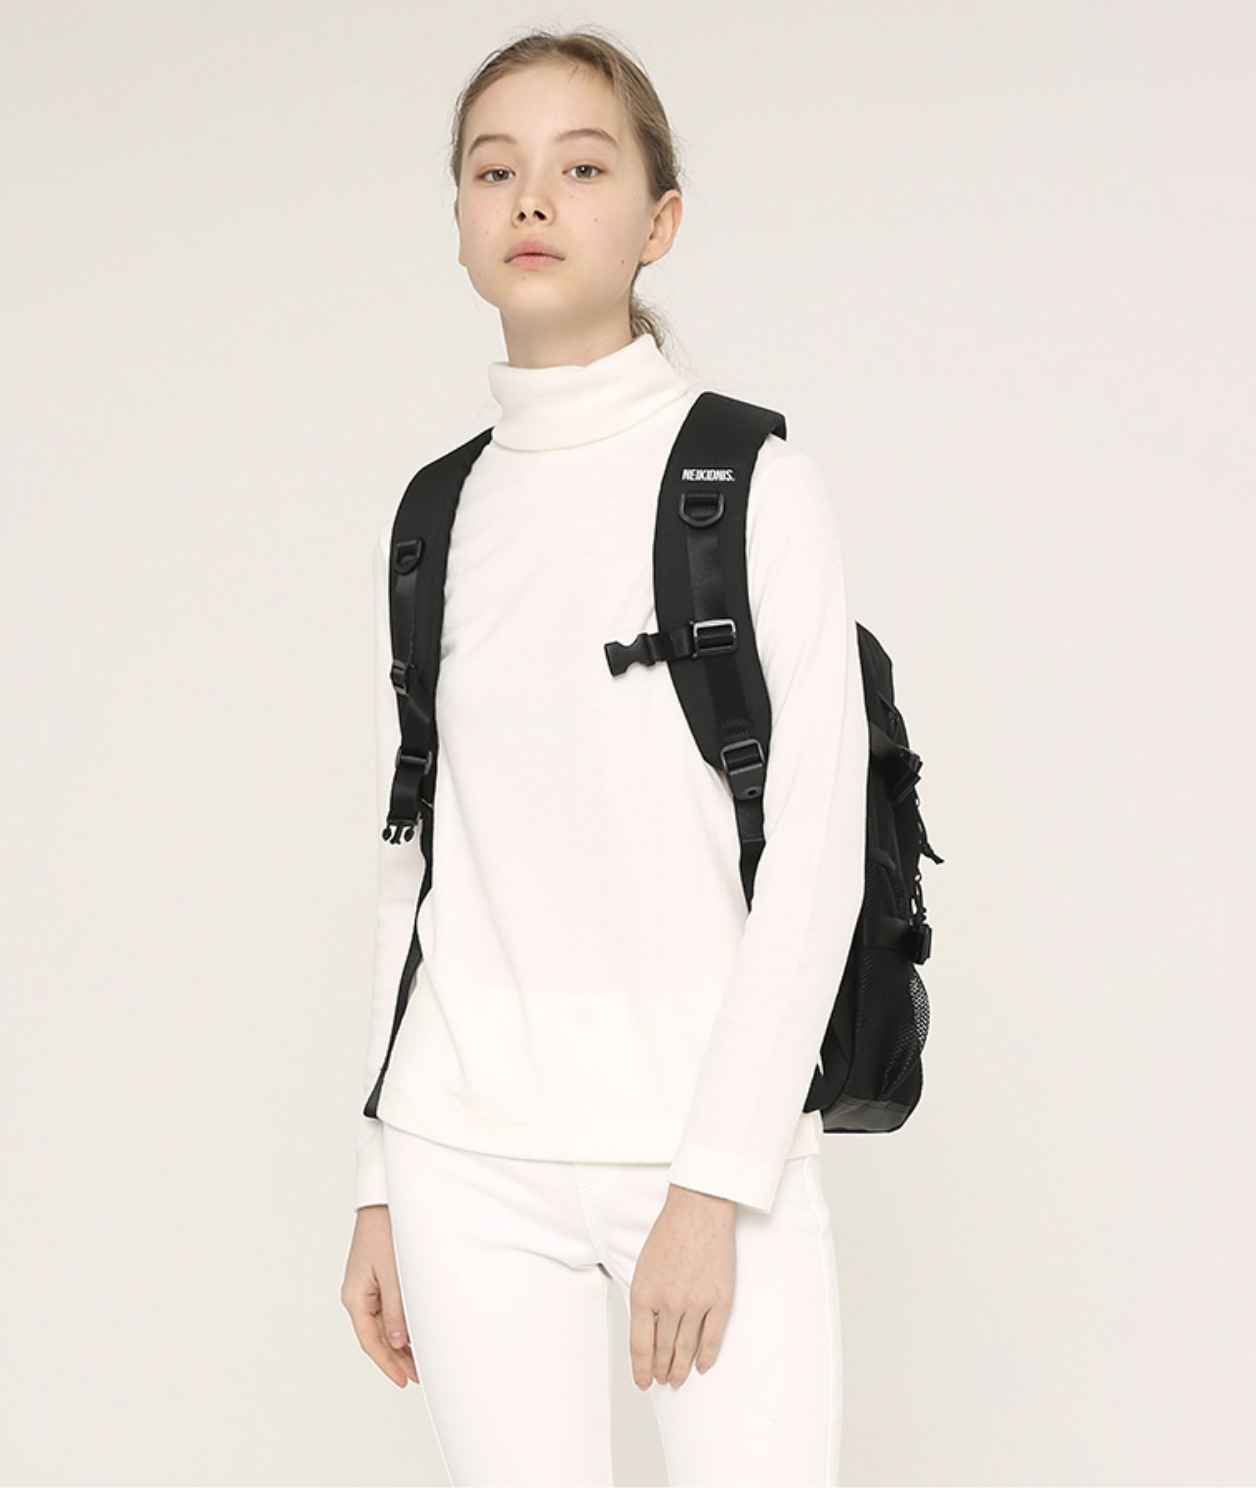 shop neikidnis bags